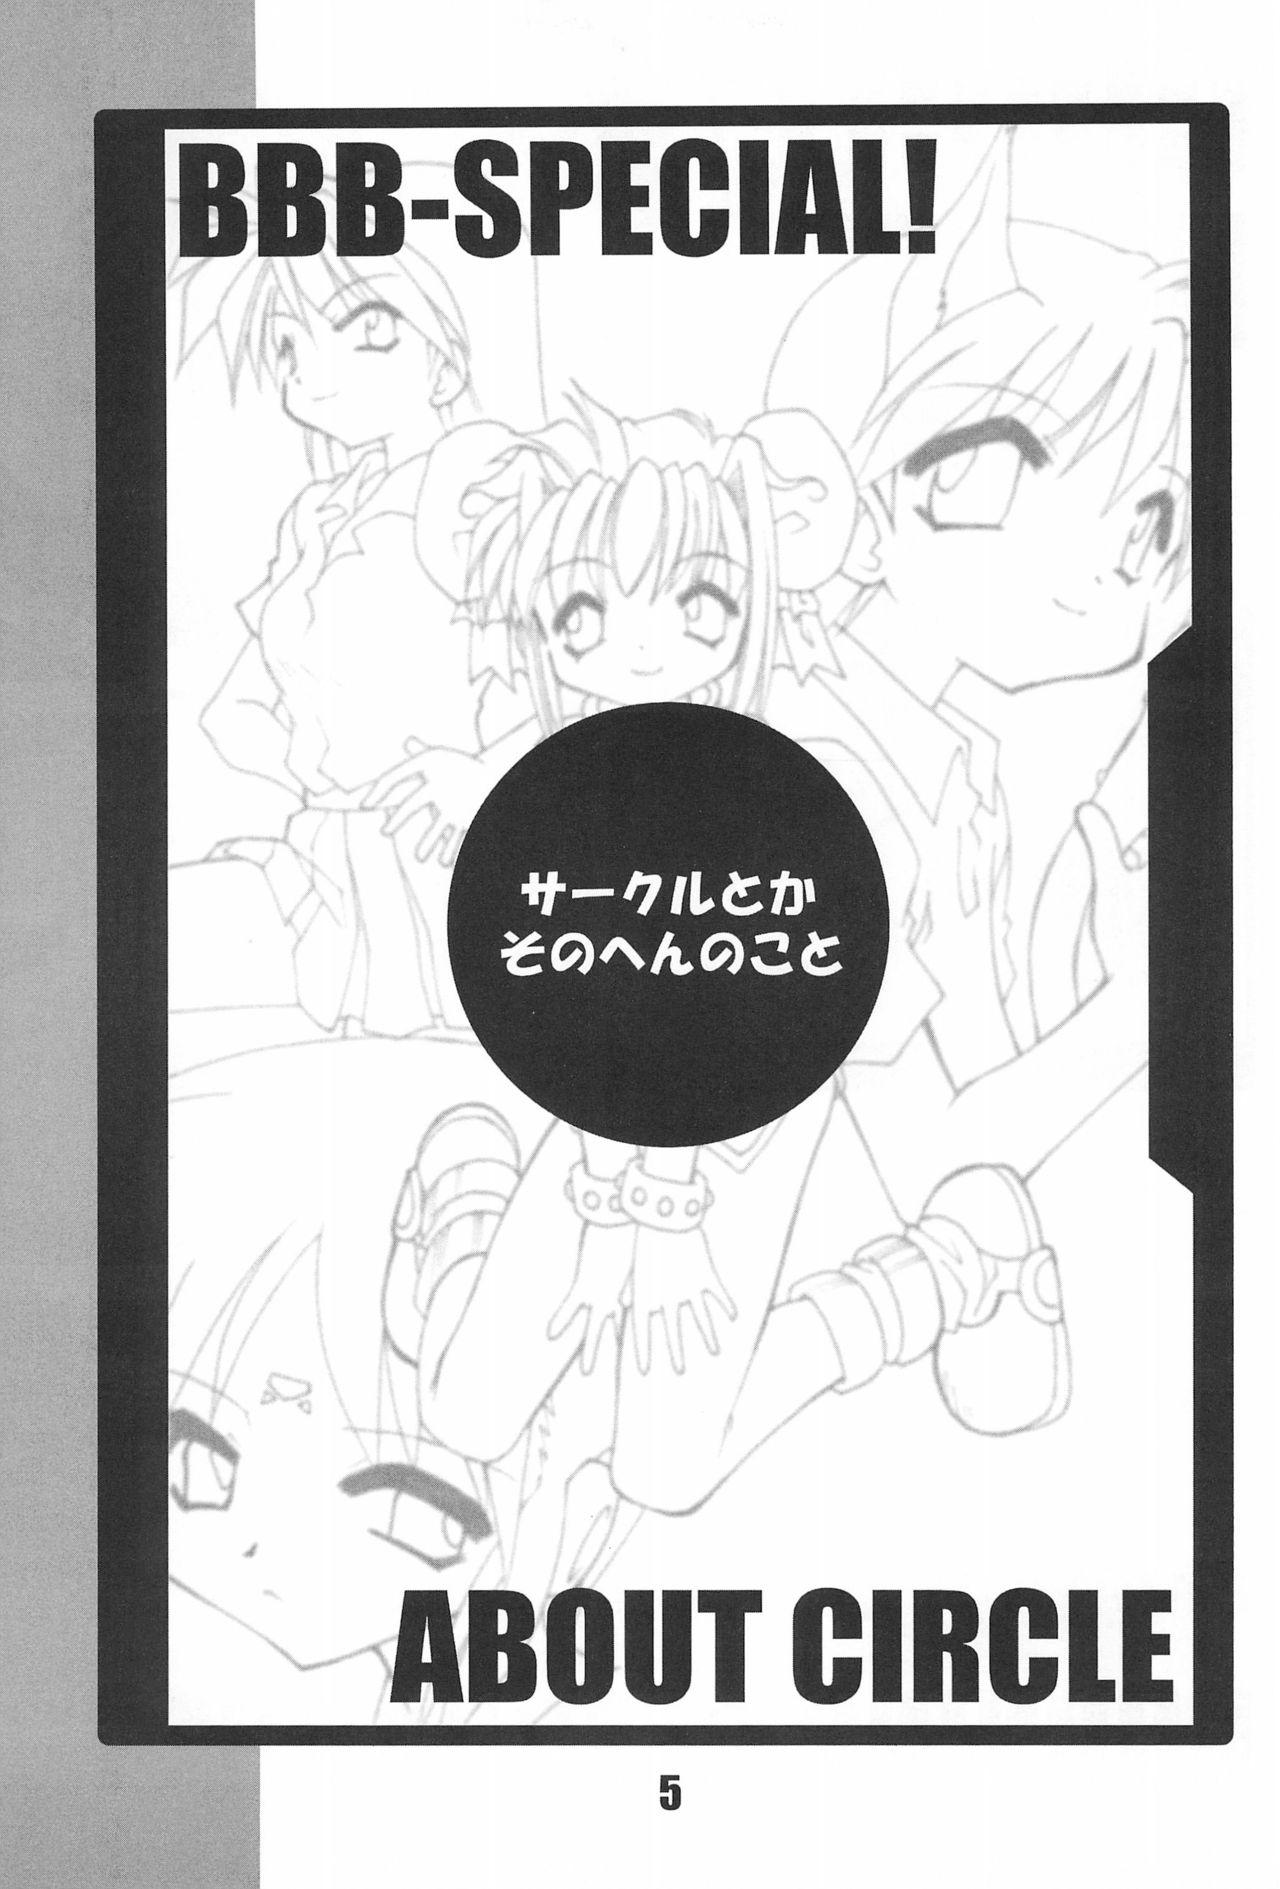 BBB OFFICIAL GUIDE BOOK 4